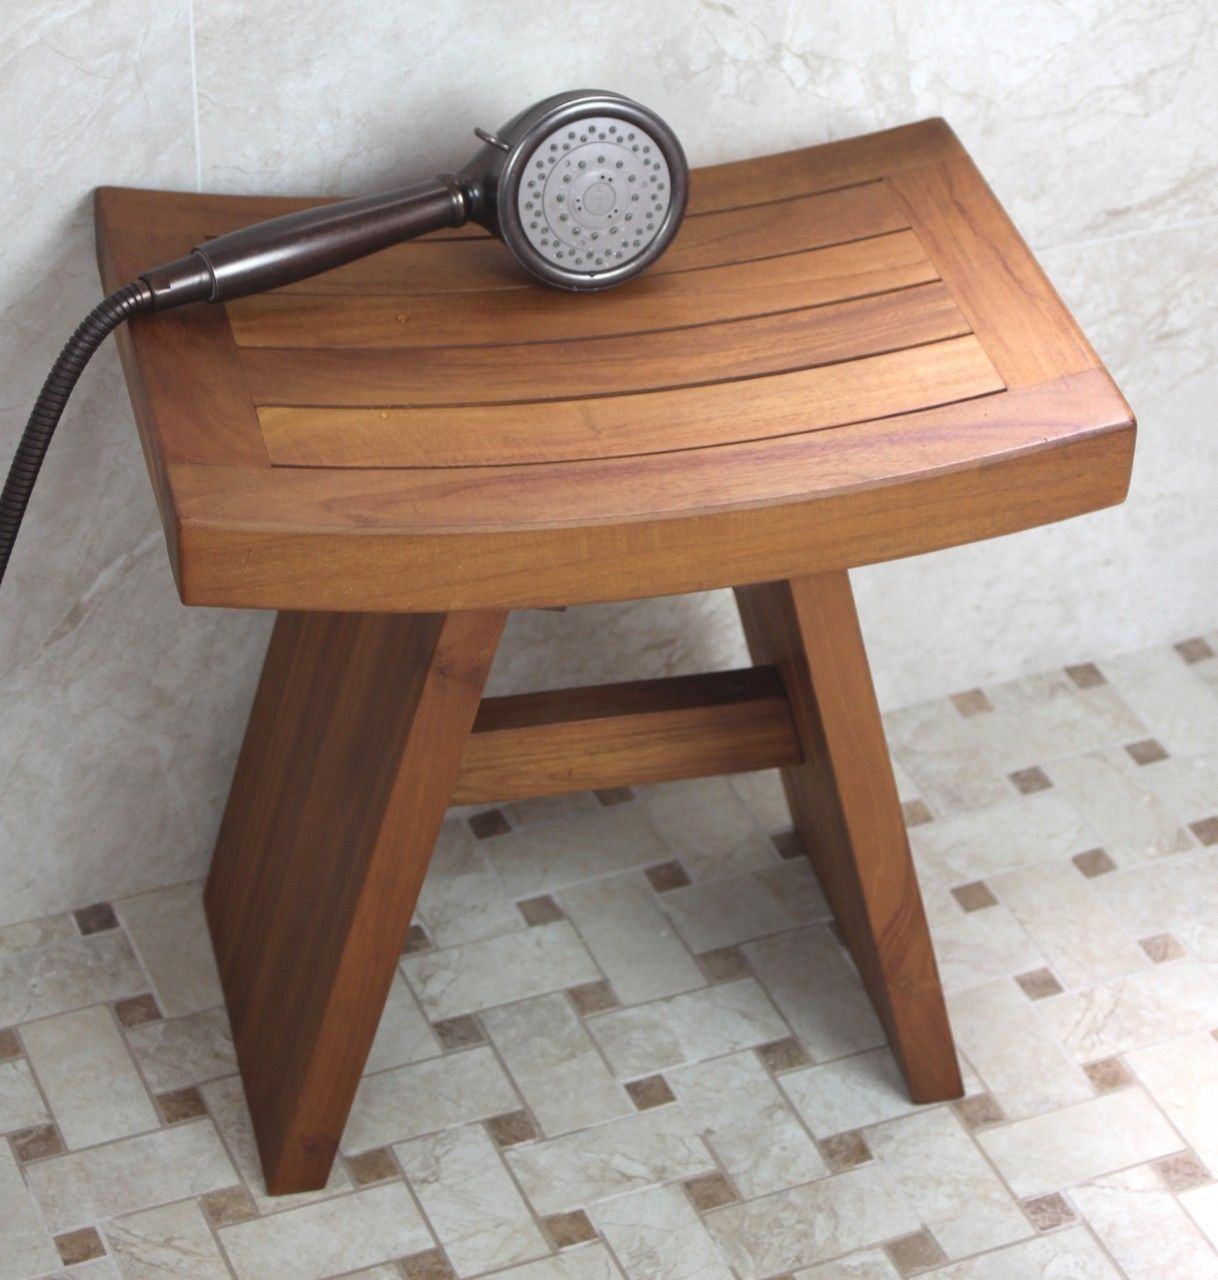 pictures of teak corner shower seats - Google Search